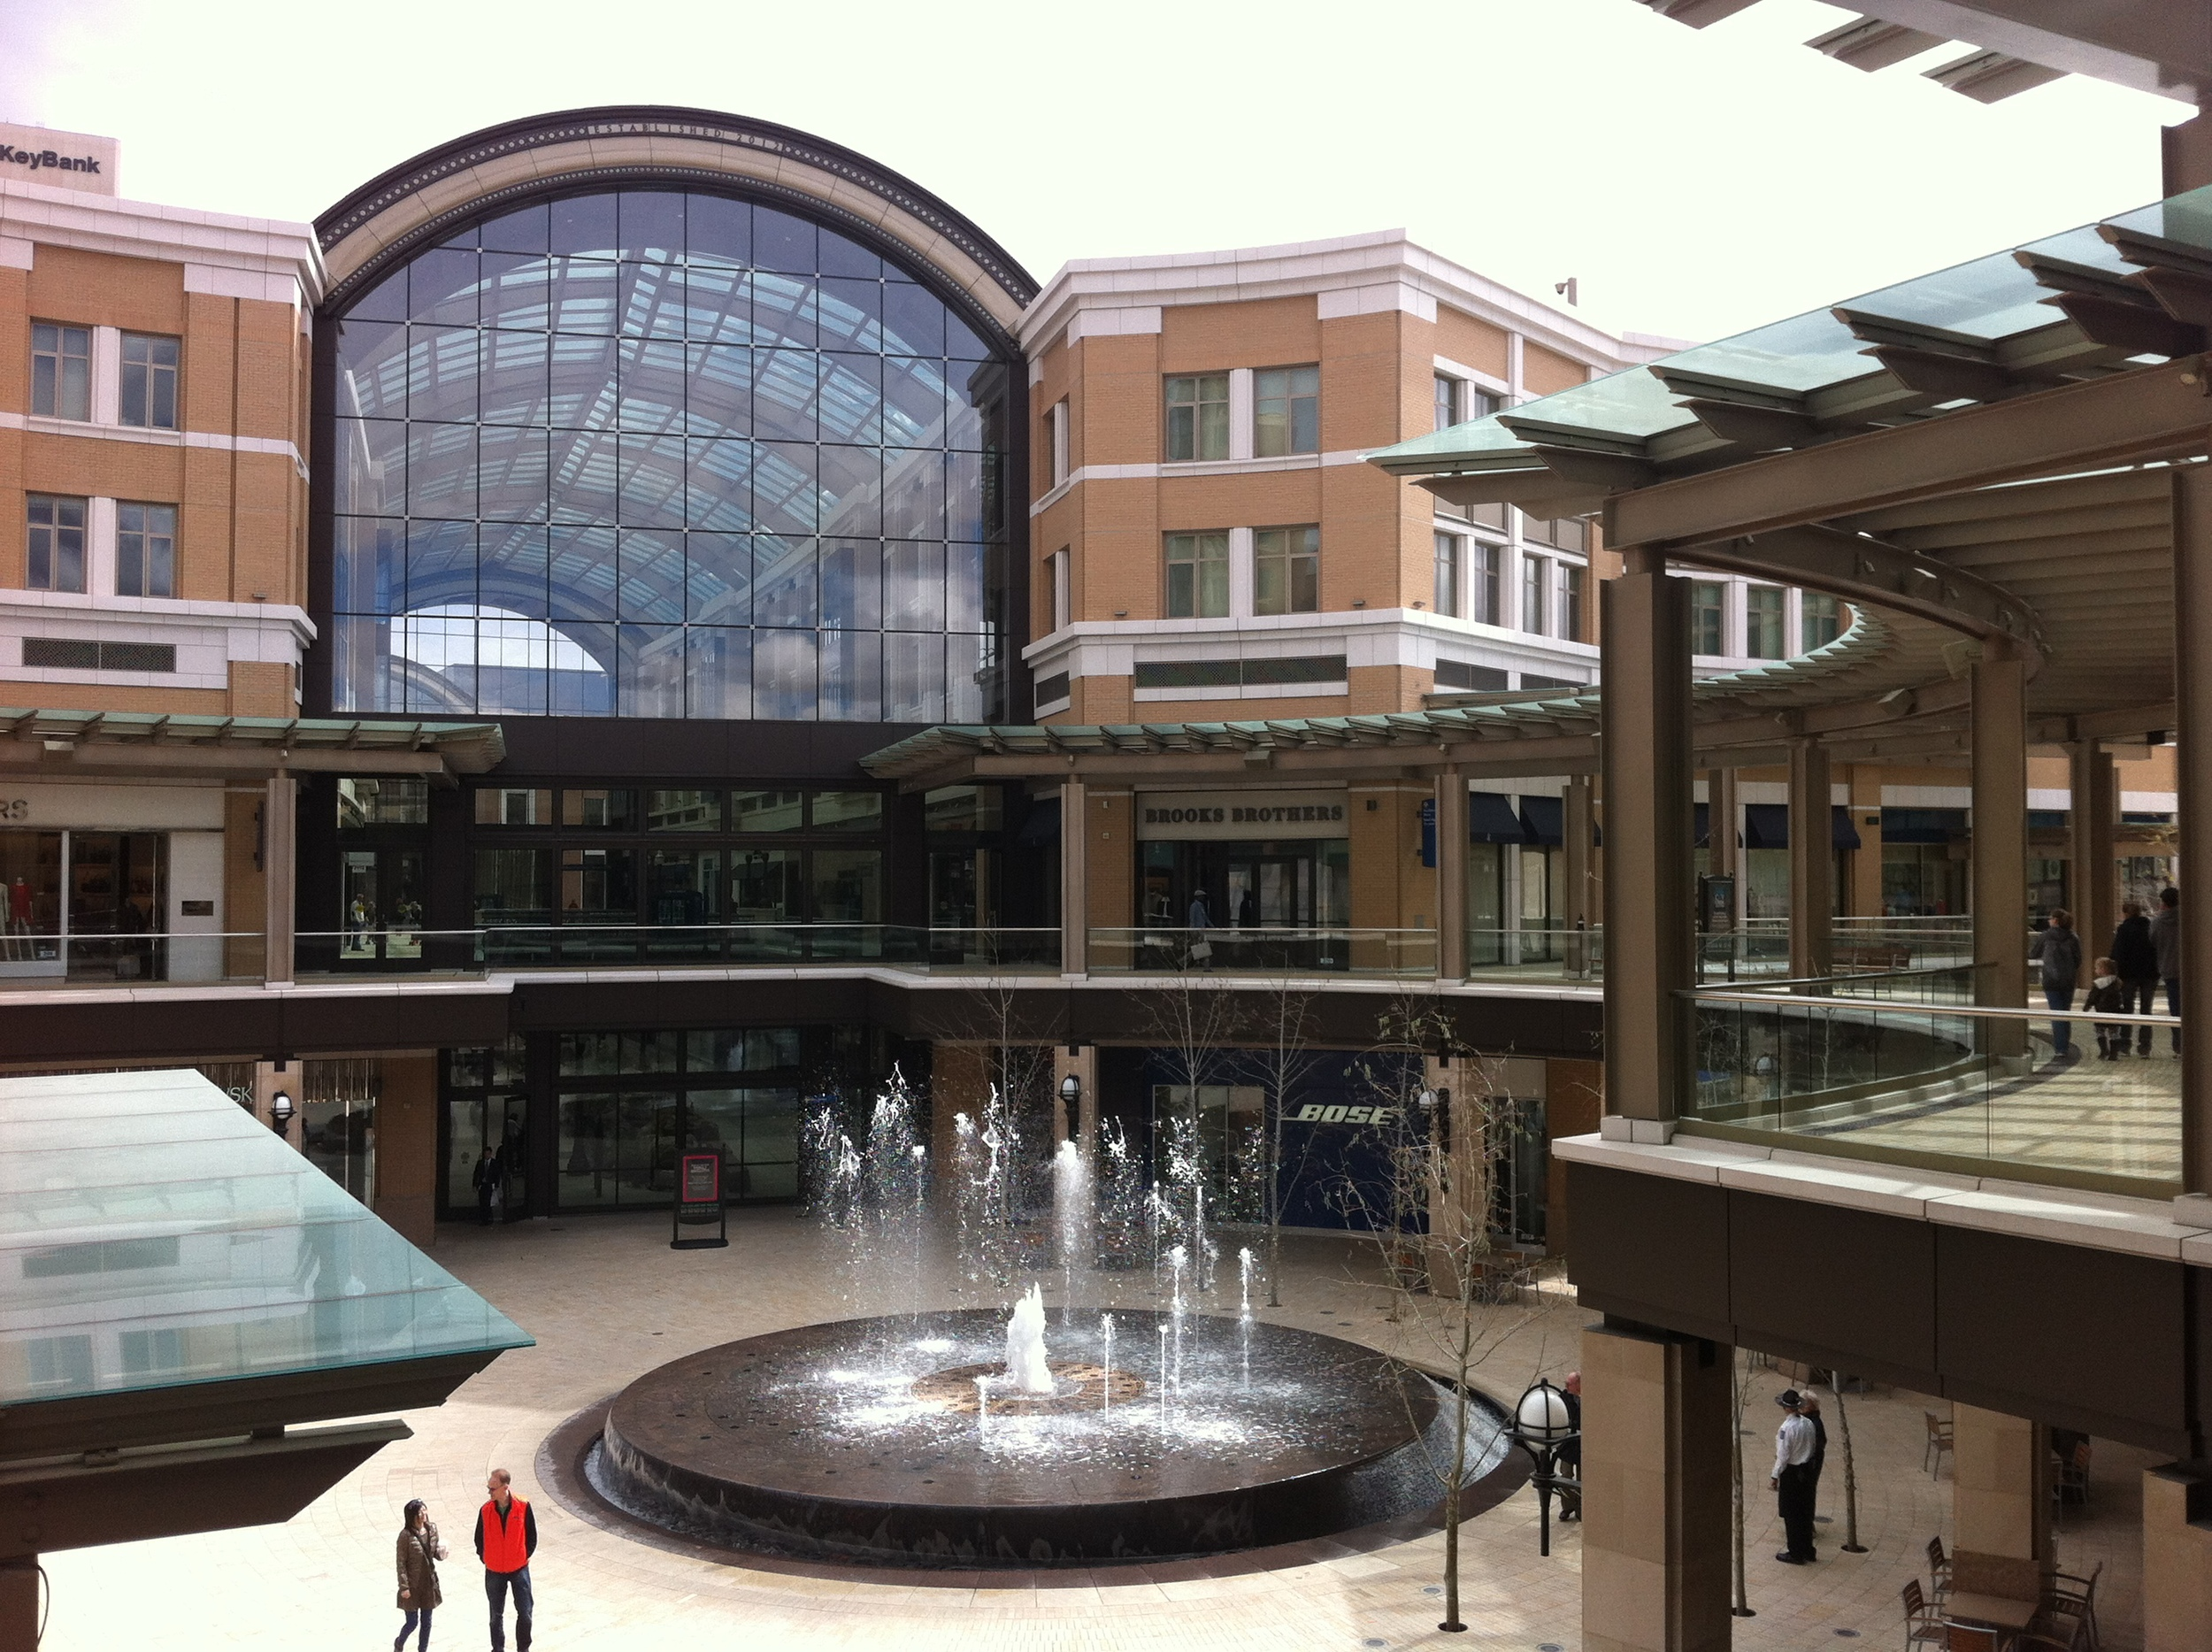 City Creek Centre's plaza and fountain.